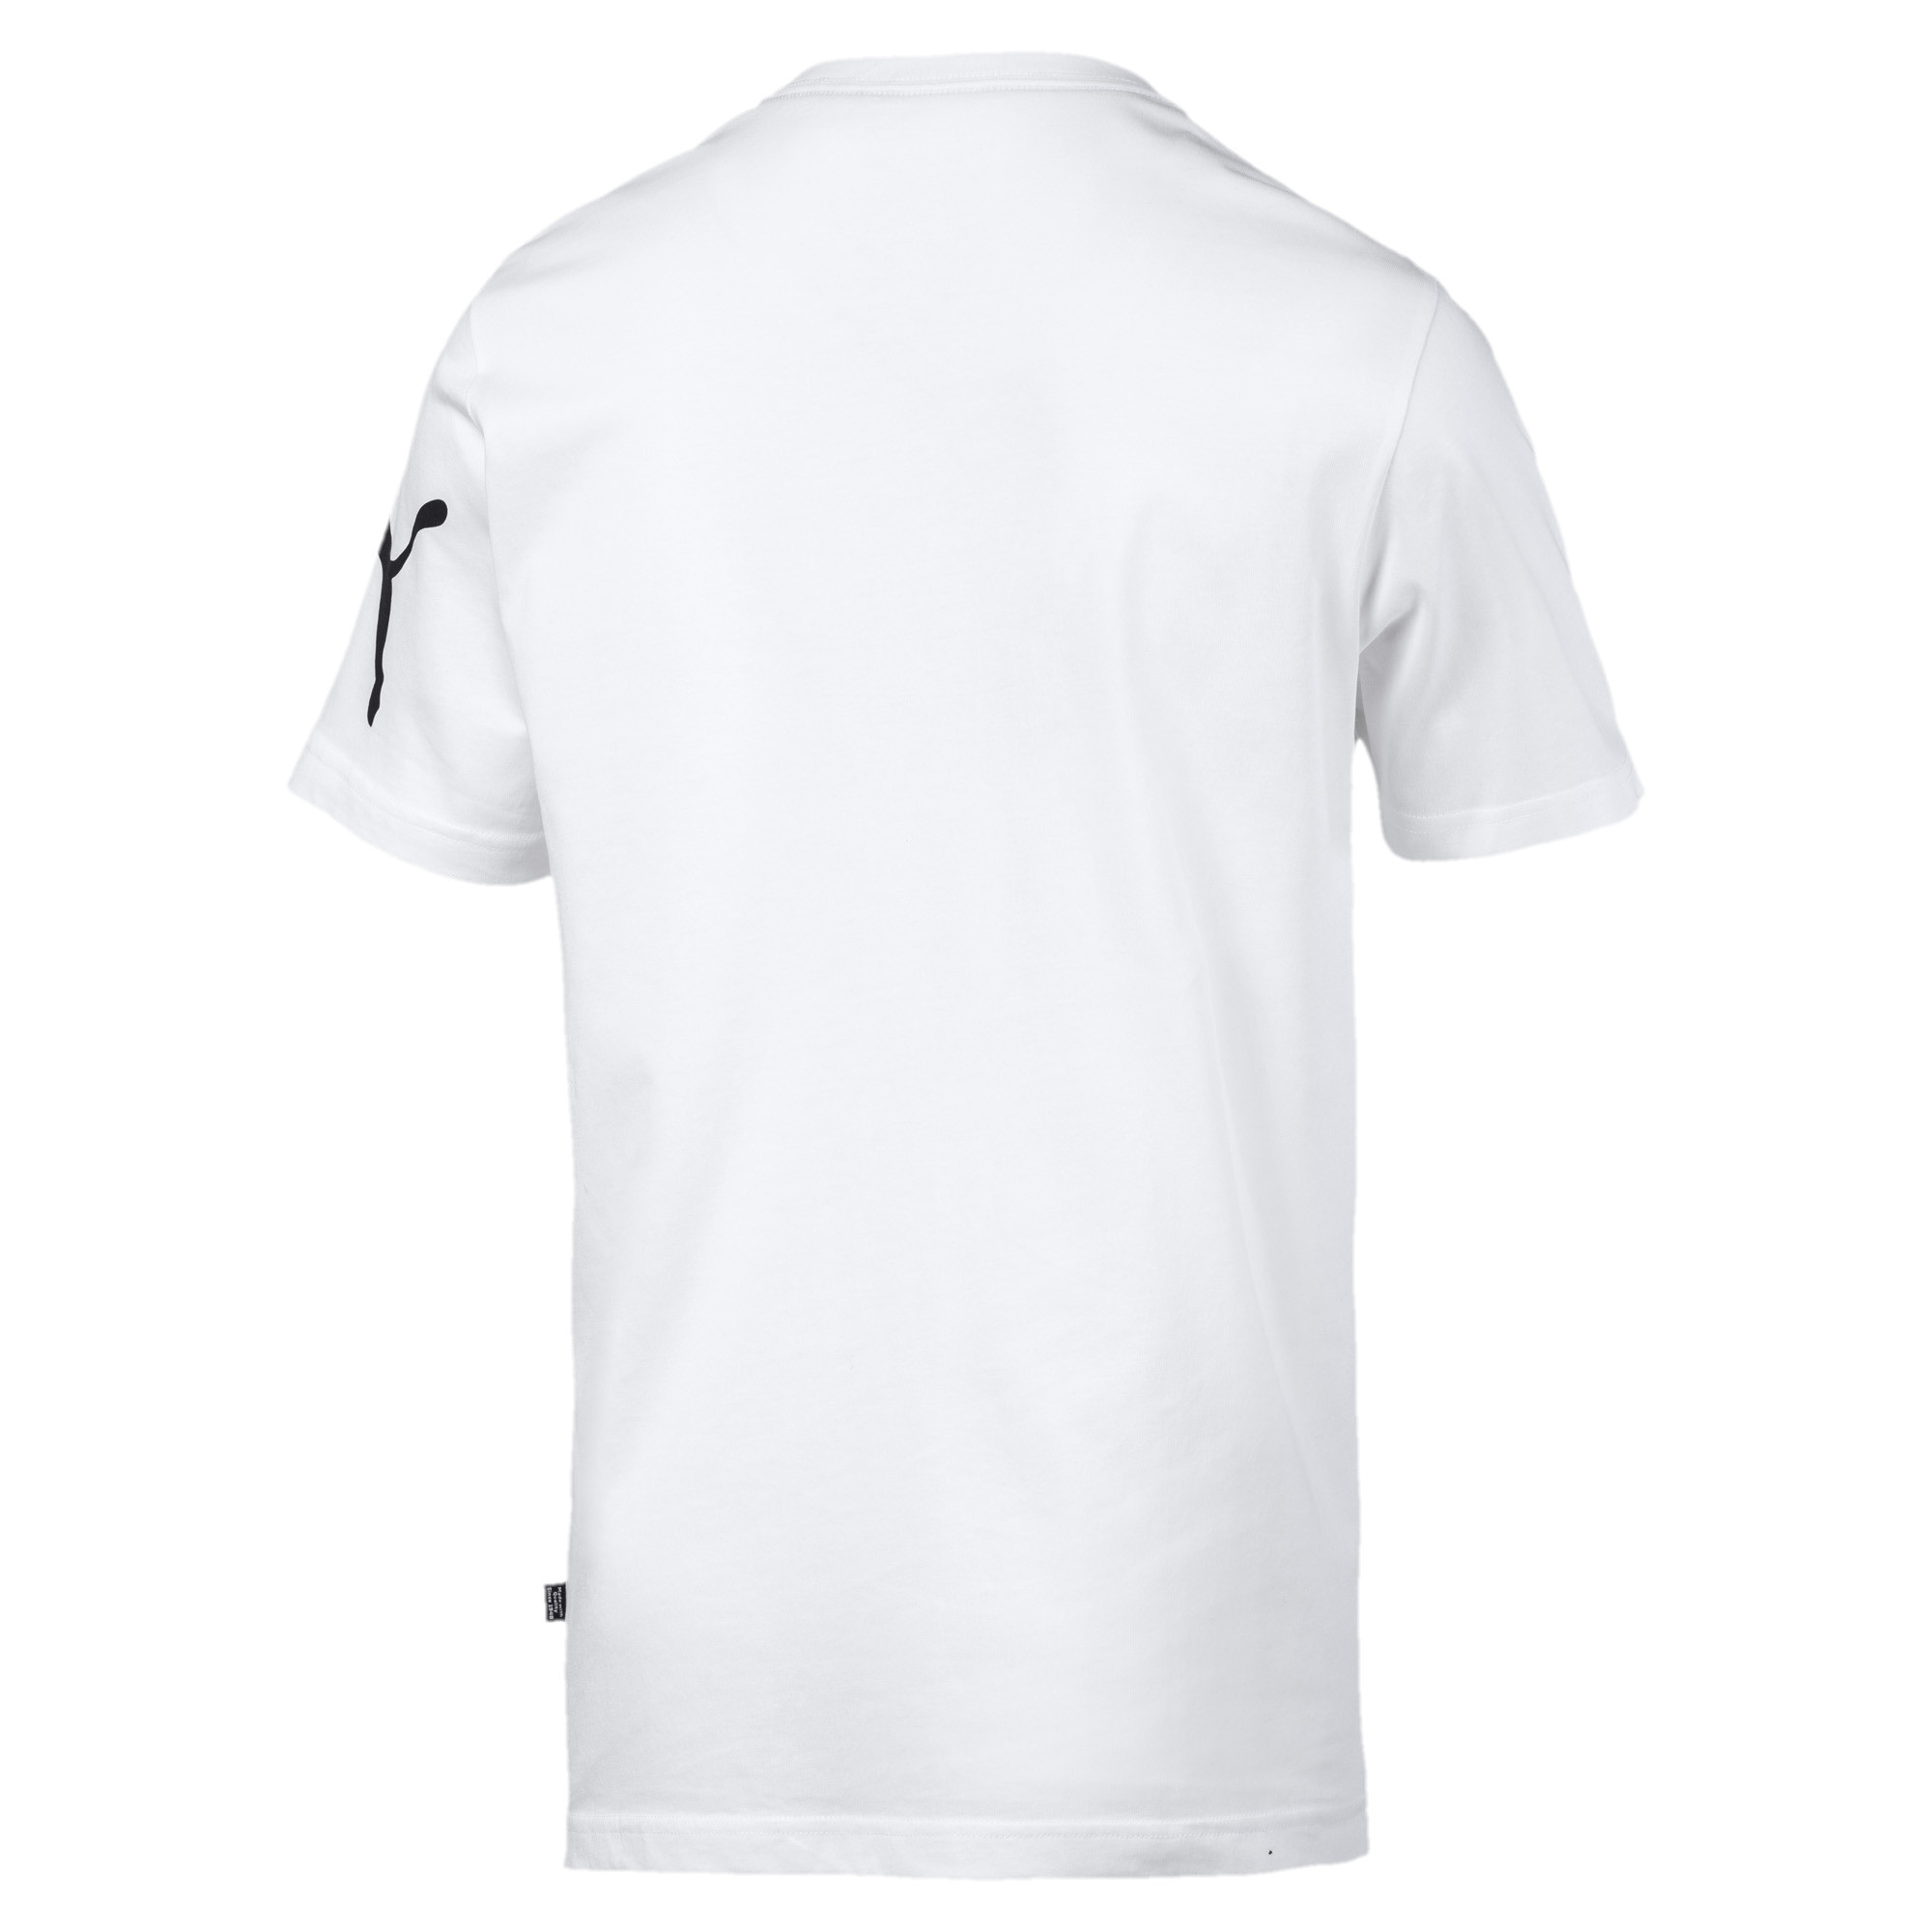 PUMA-Big-Logo-Men-039-s-Tee-Men-Tee-Basics thumbnail 17